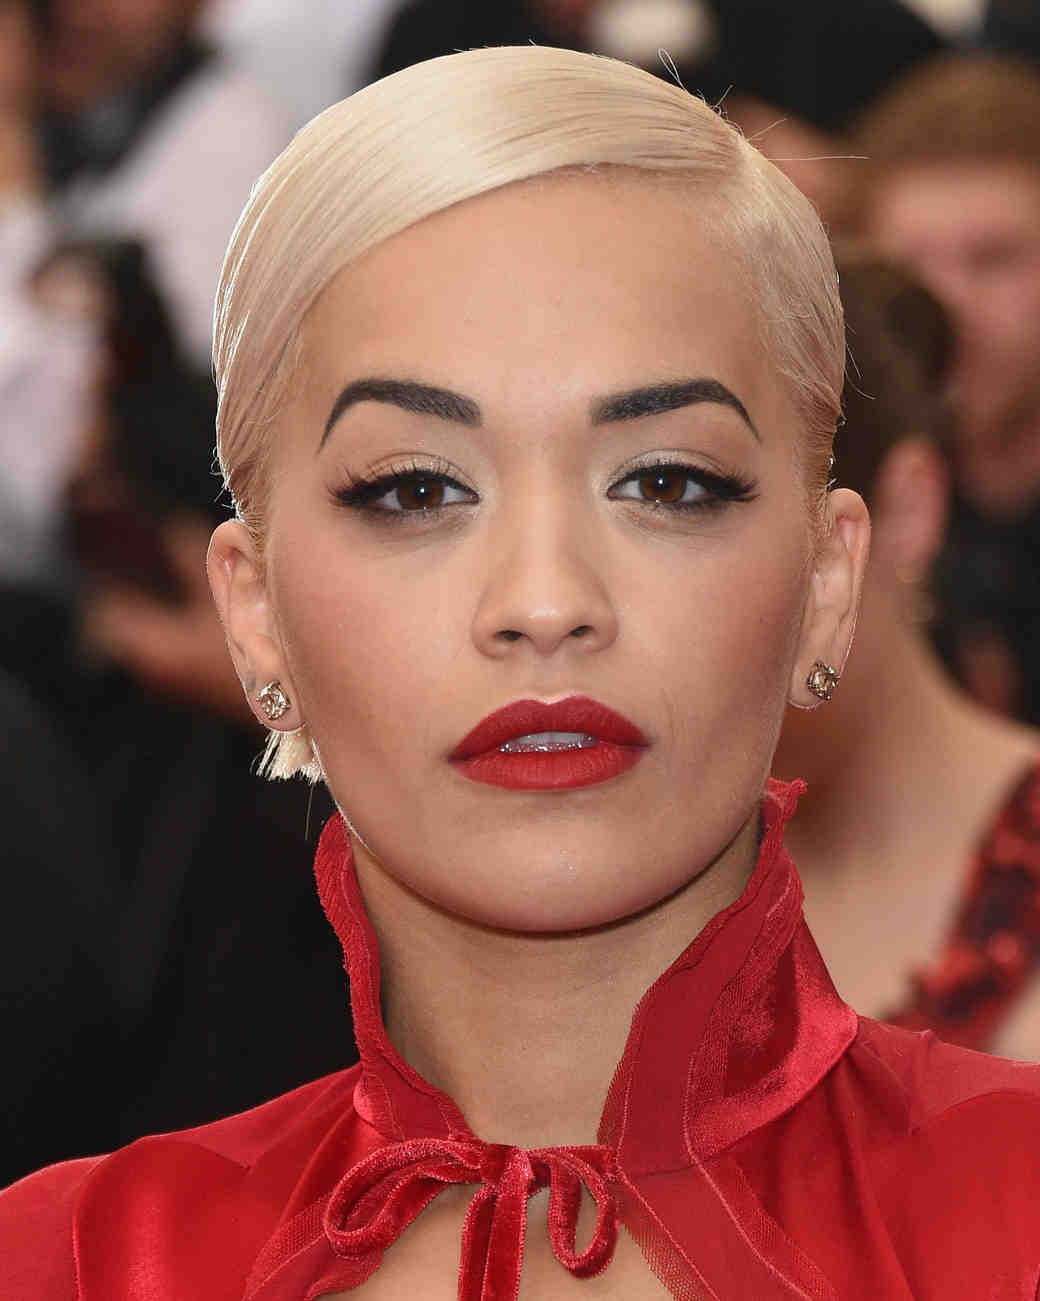 celebrity-wedding-makeup-ritaora-0915.jpg